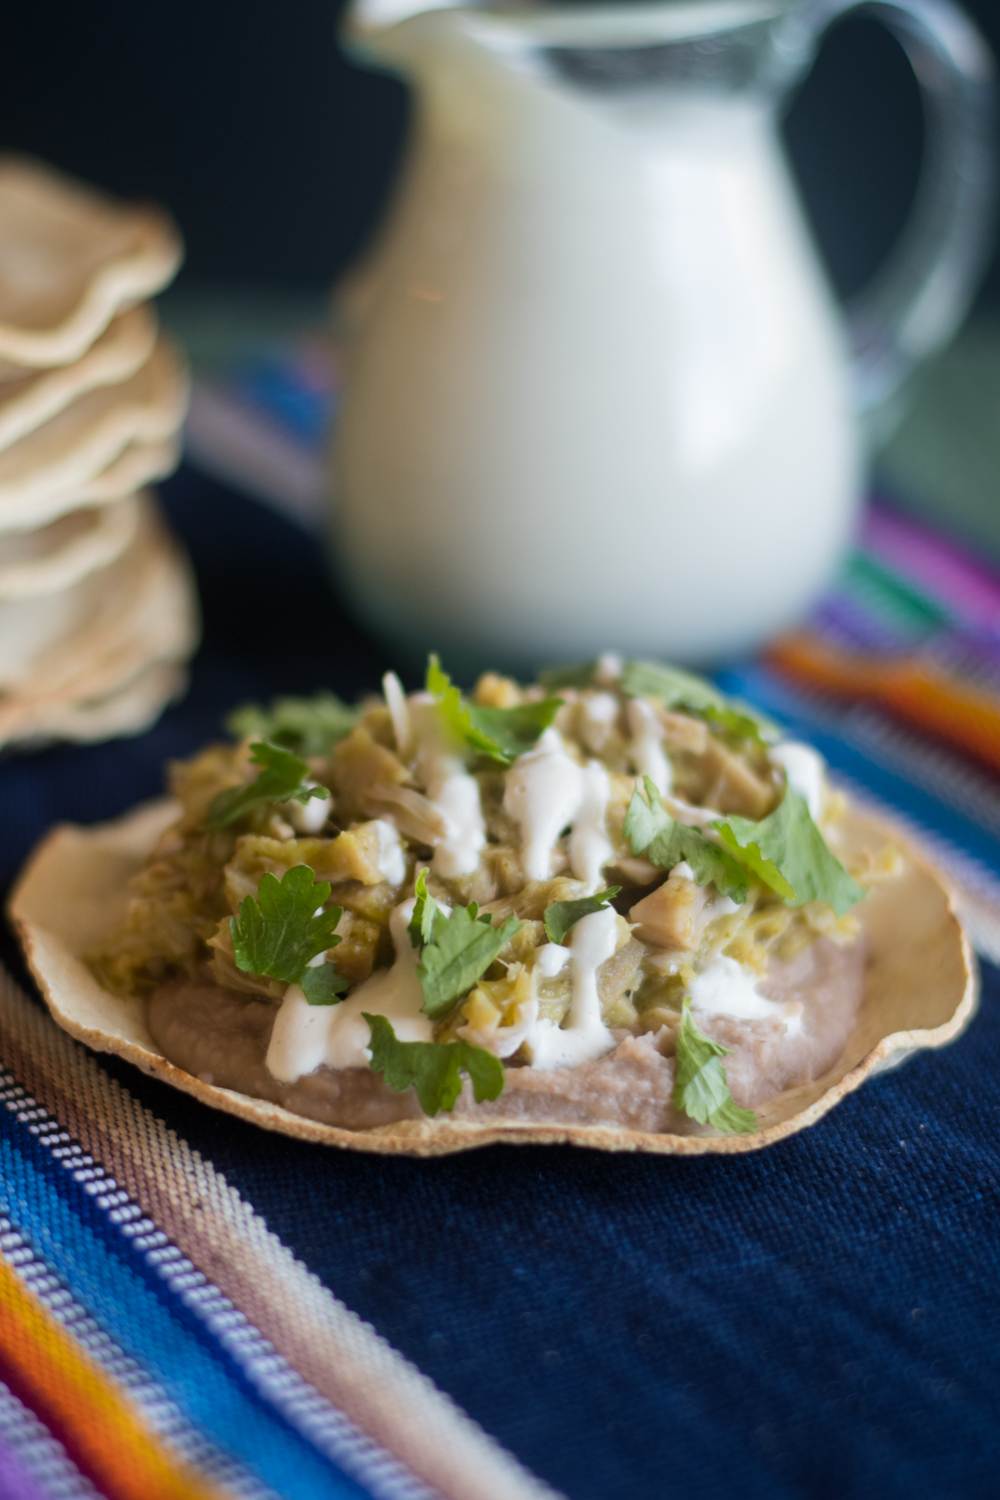 Tostadas are topped with refried beans, jackfruit cooked in salsa verde, and cashew crema. Perfect way to switch up taco night!